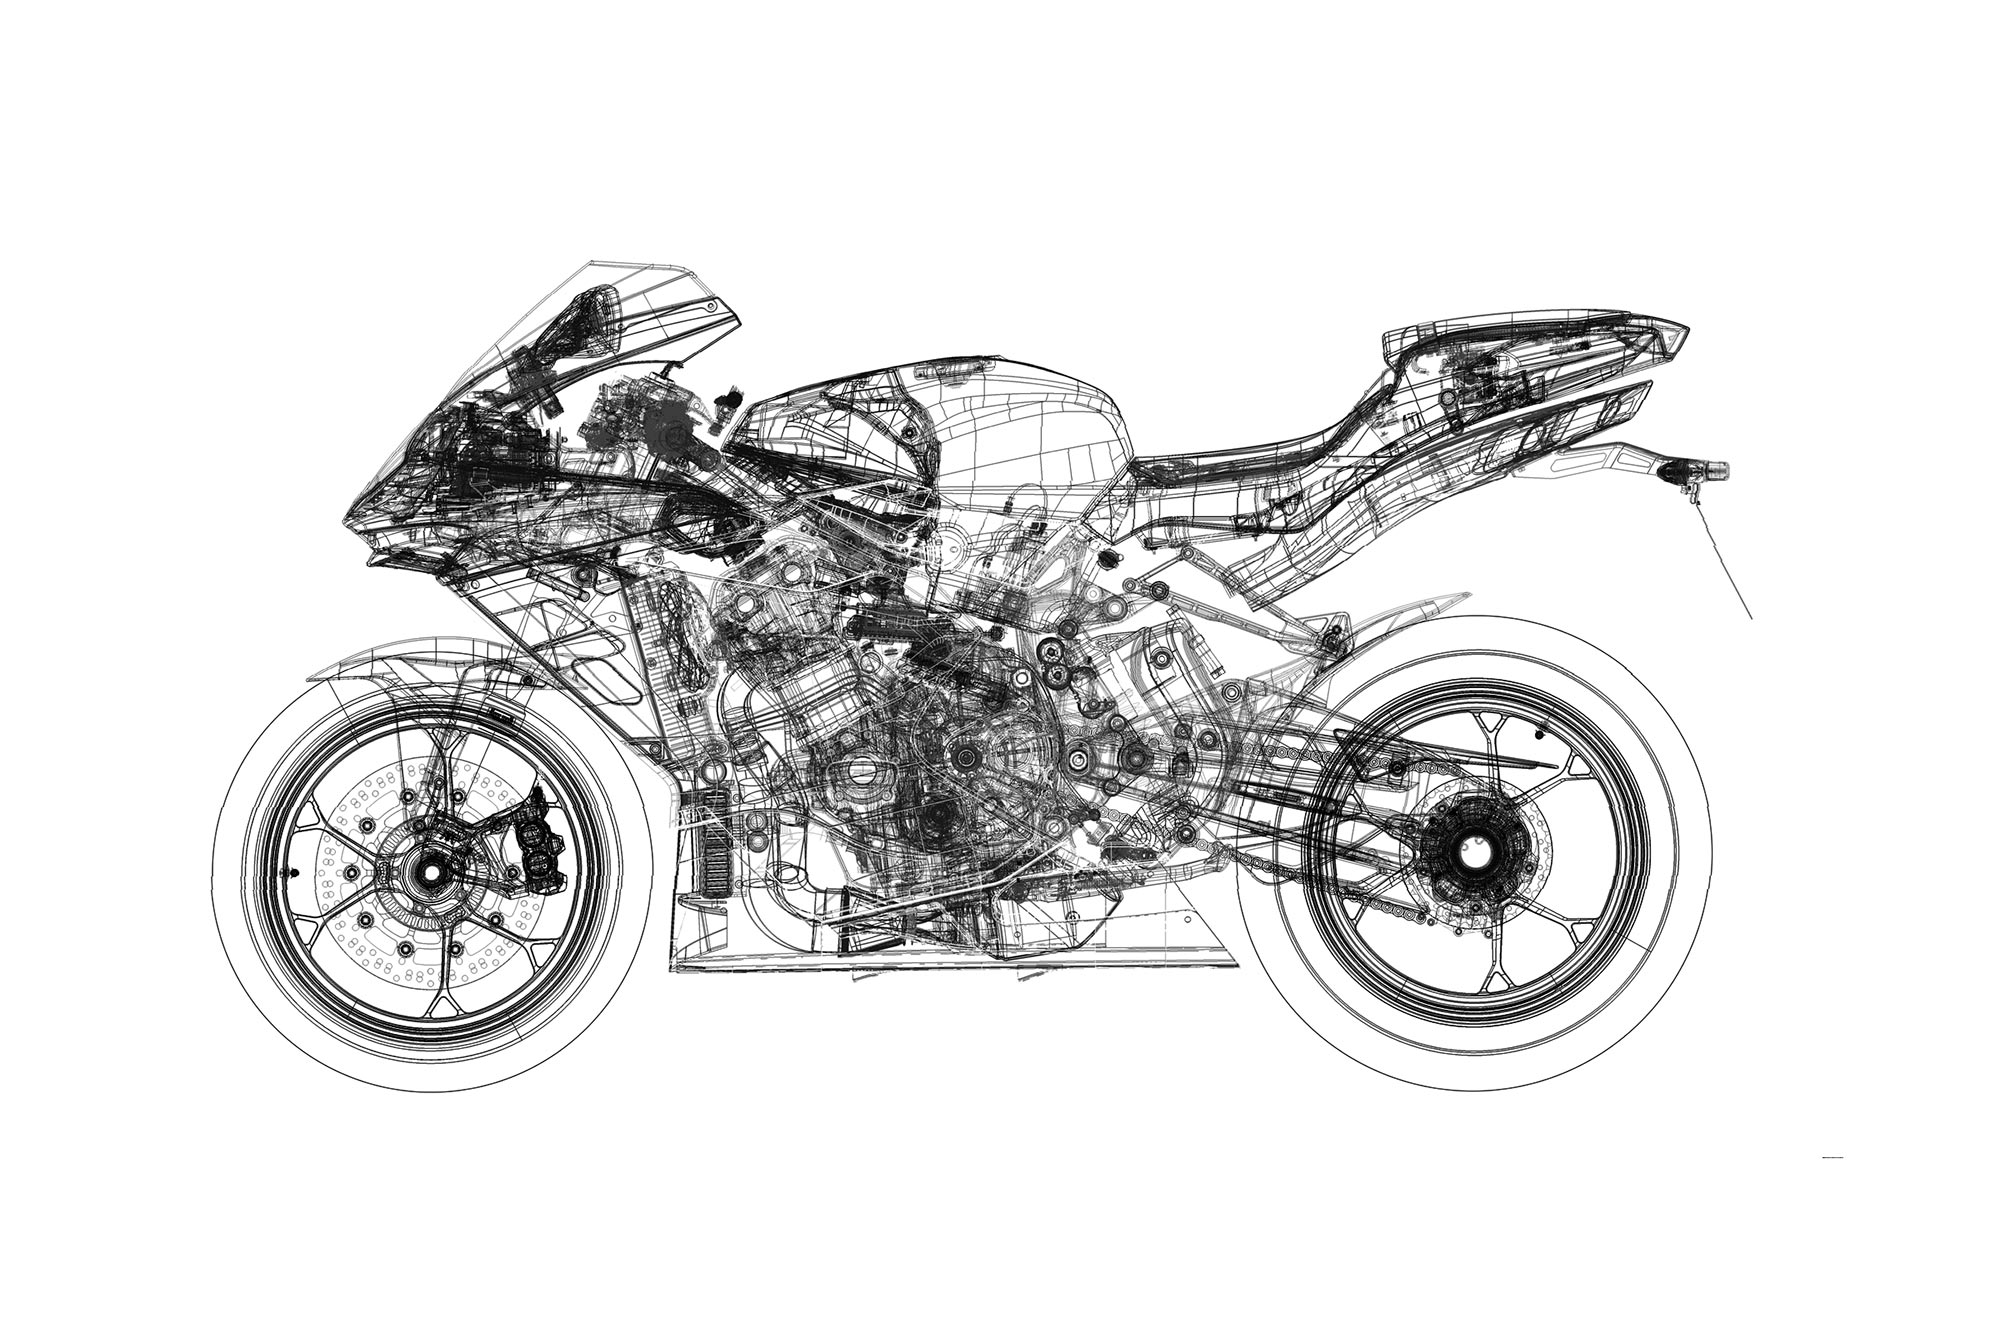 2015 mv agusta f4 rc confirmed 46000 asphalt rubber 2015 mv agusta f4 rc confirmed 46000 malvernweather Image collections